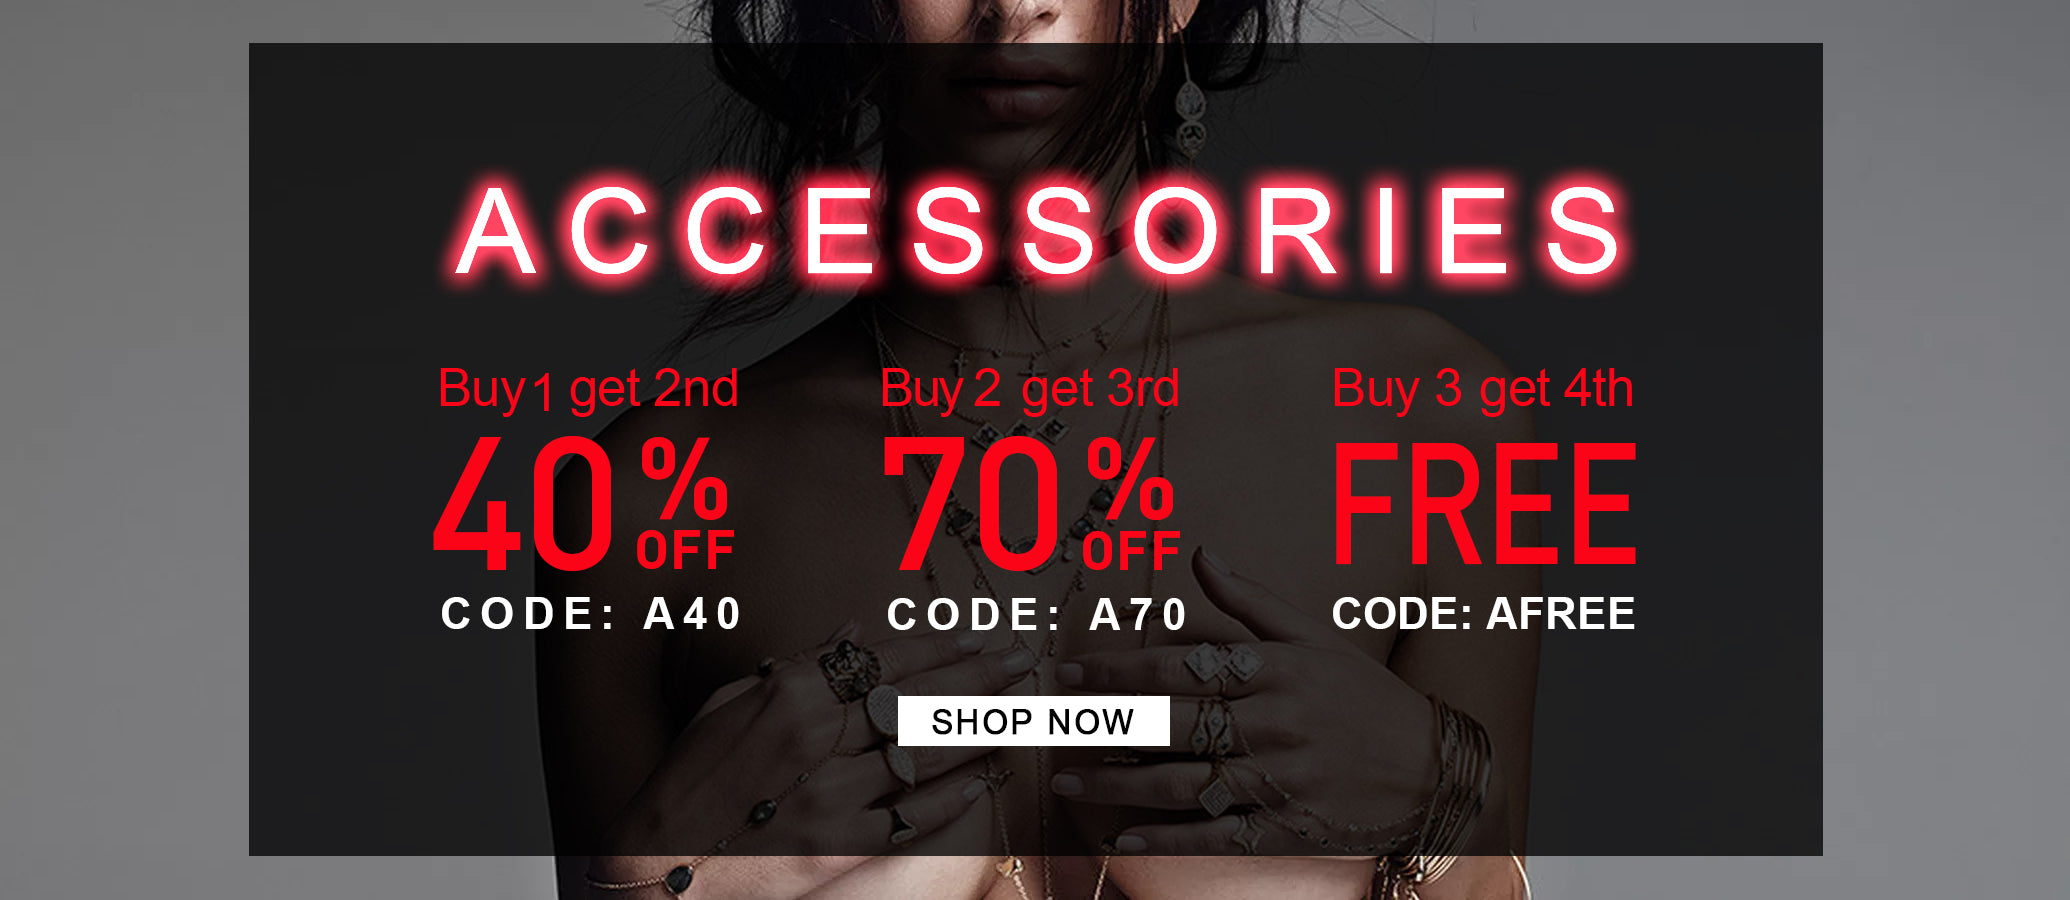 Accessories Cyber Monday Sale Banner